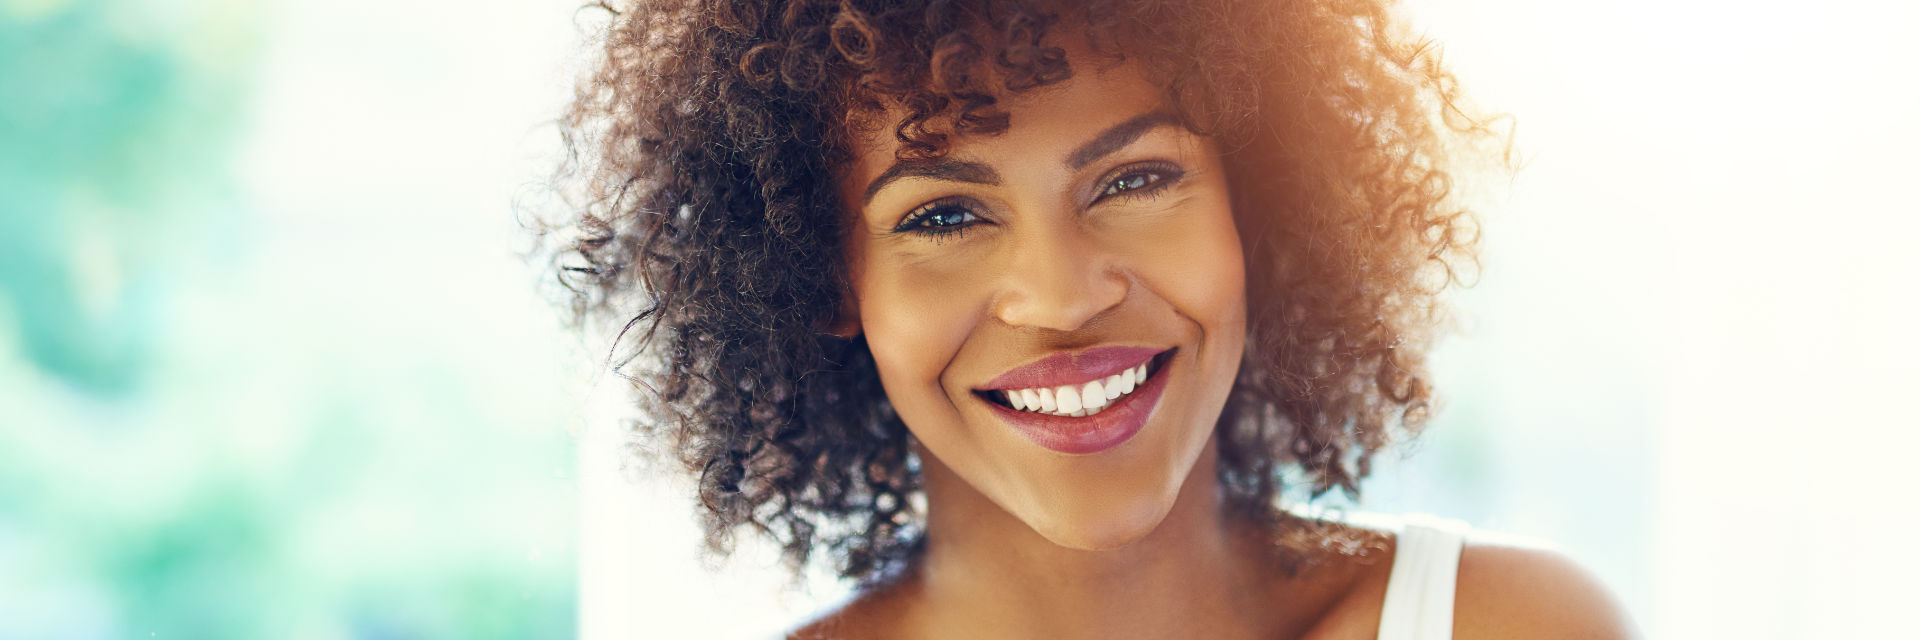 A happy young woman with a perfect smile.